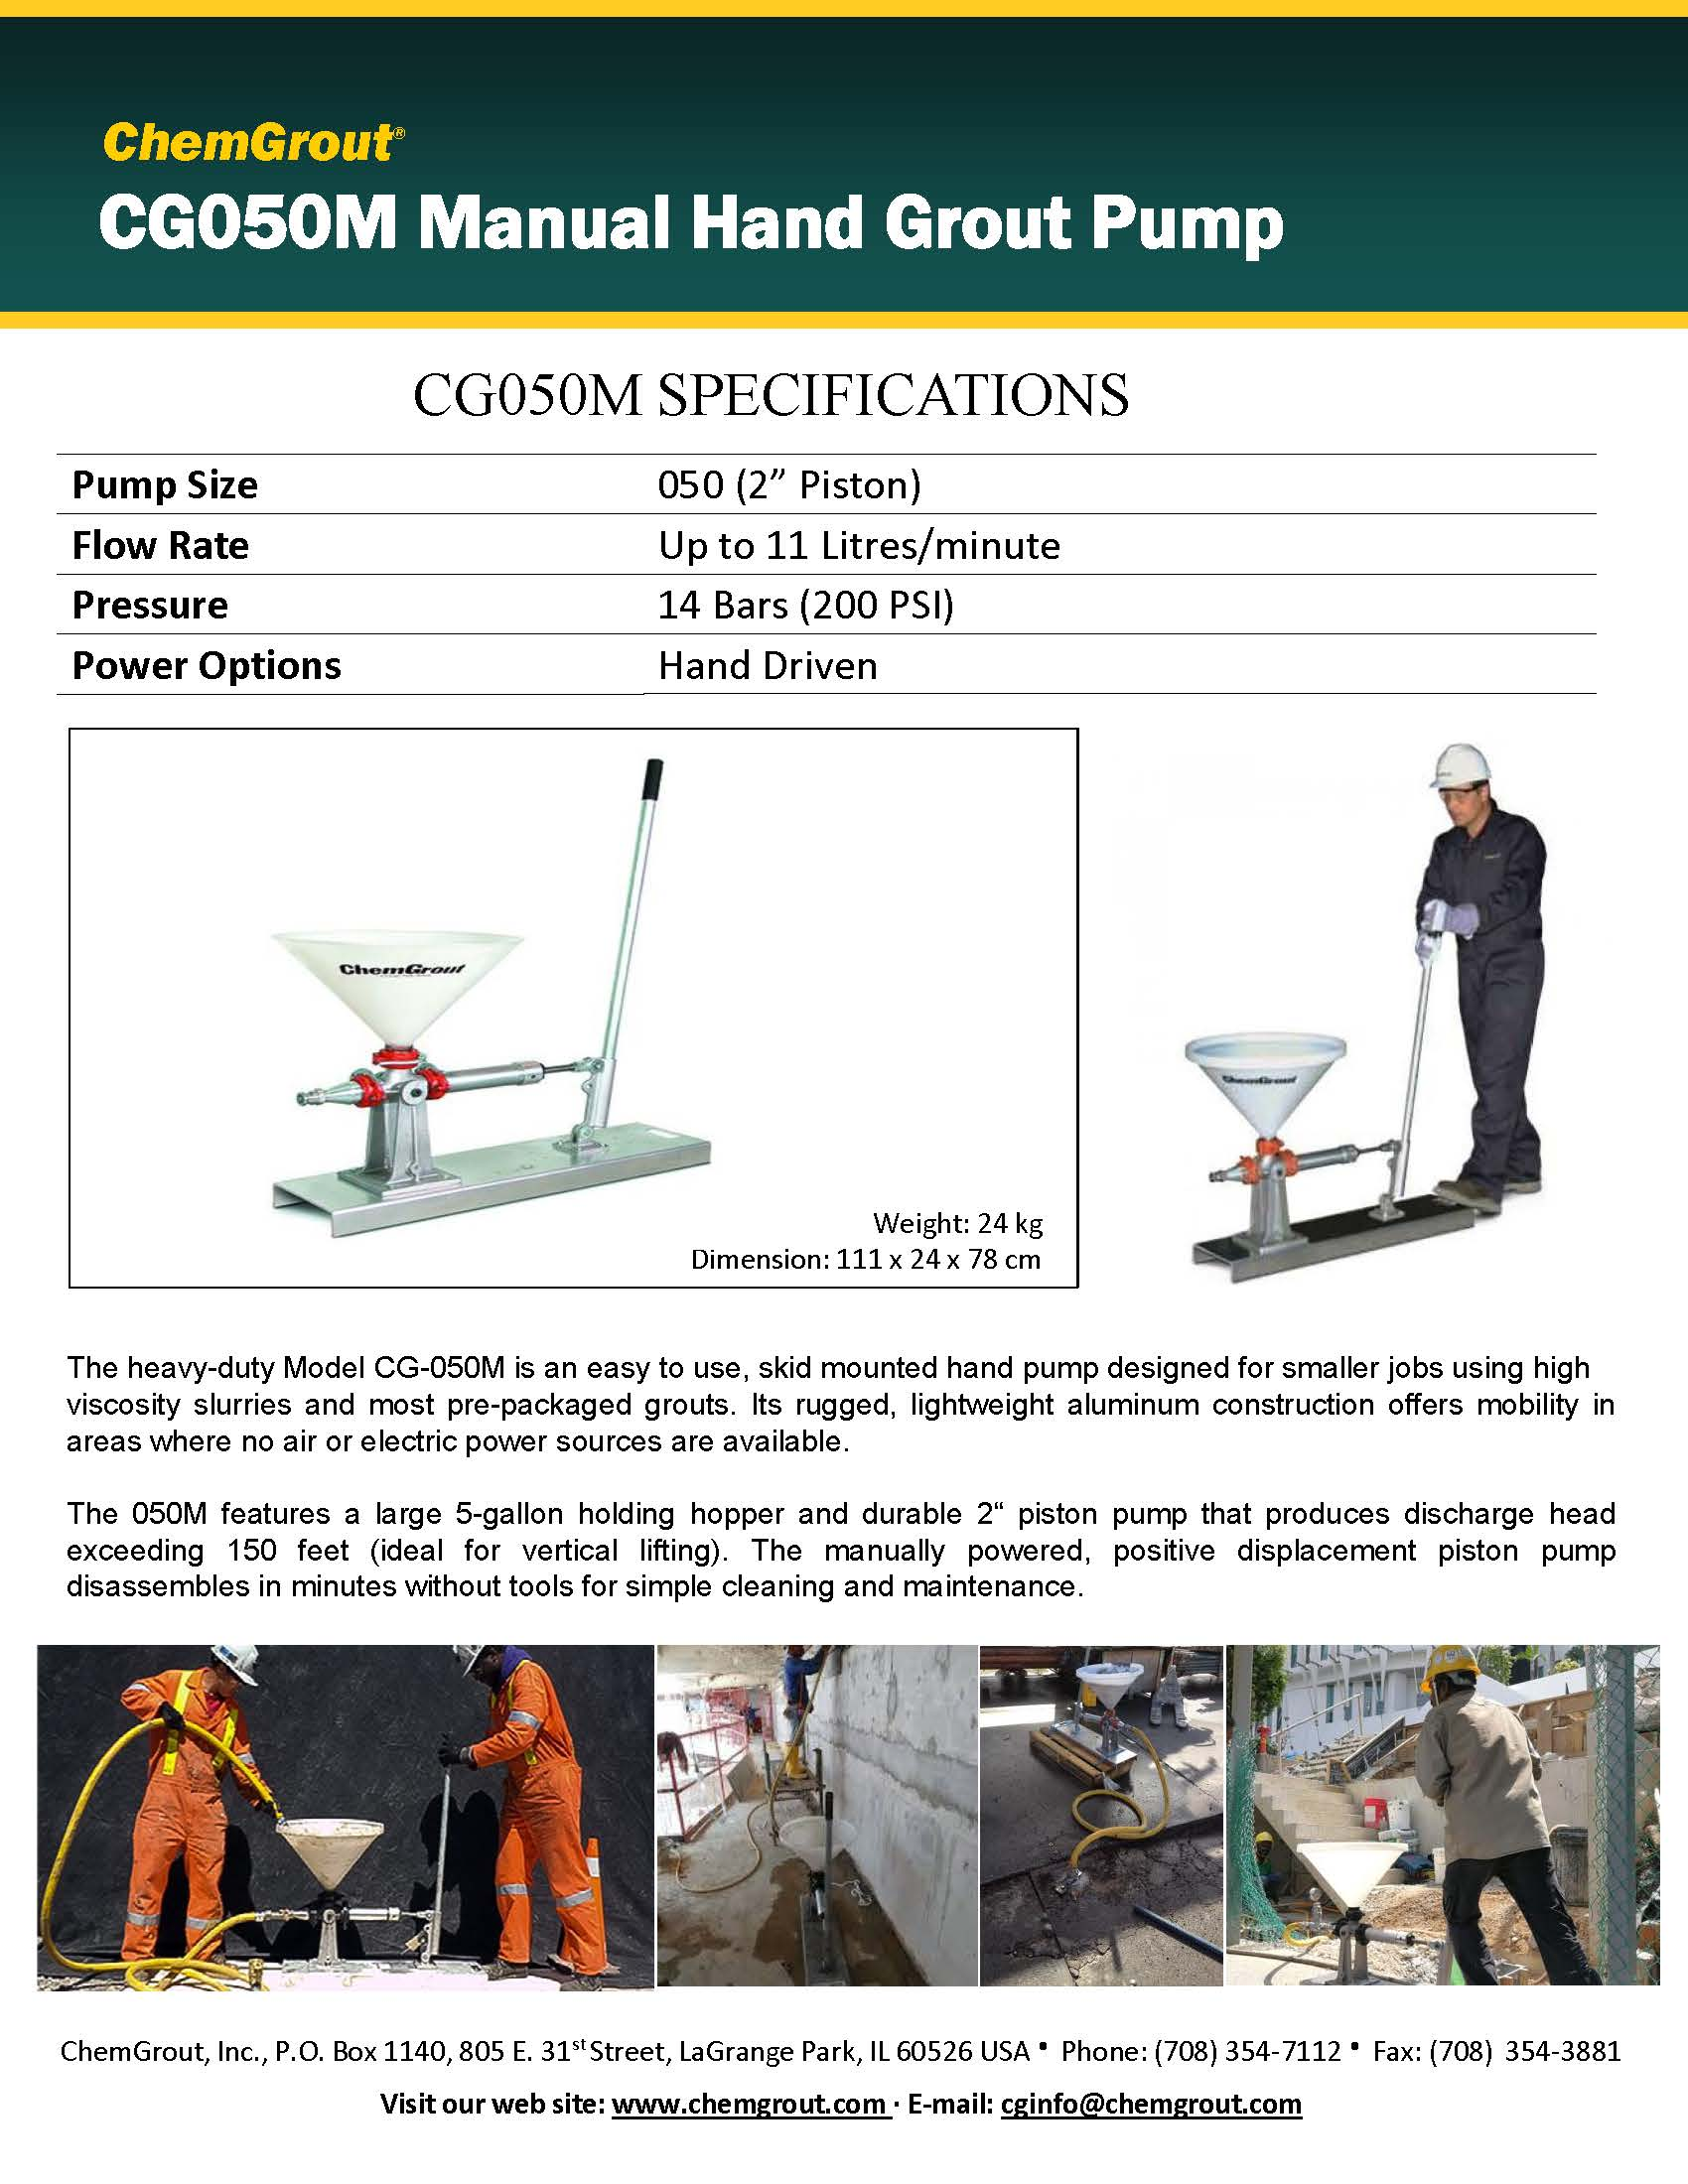 Chemgrout CG050M Manual Grout PumpBrochure